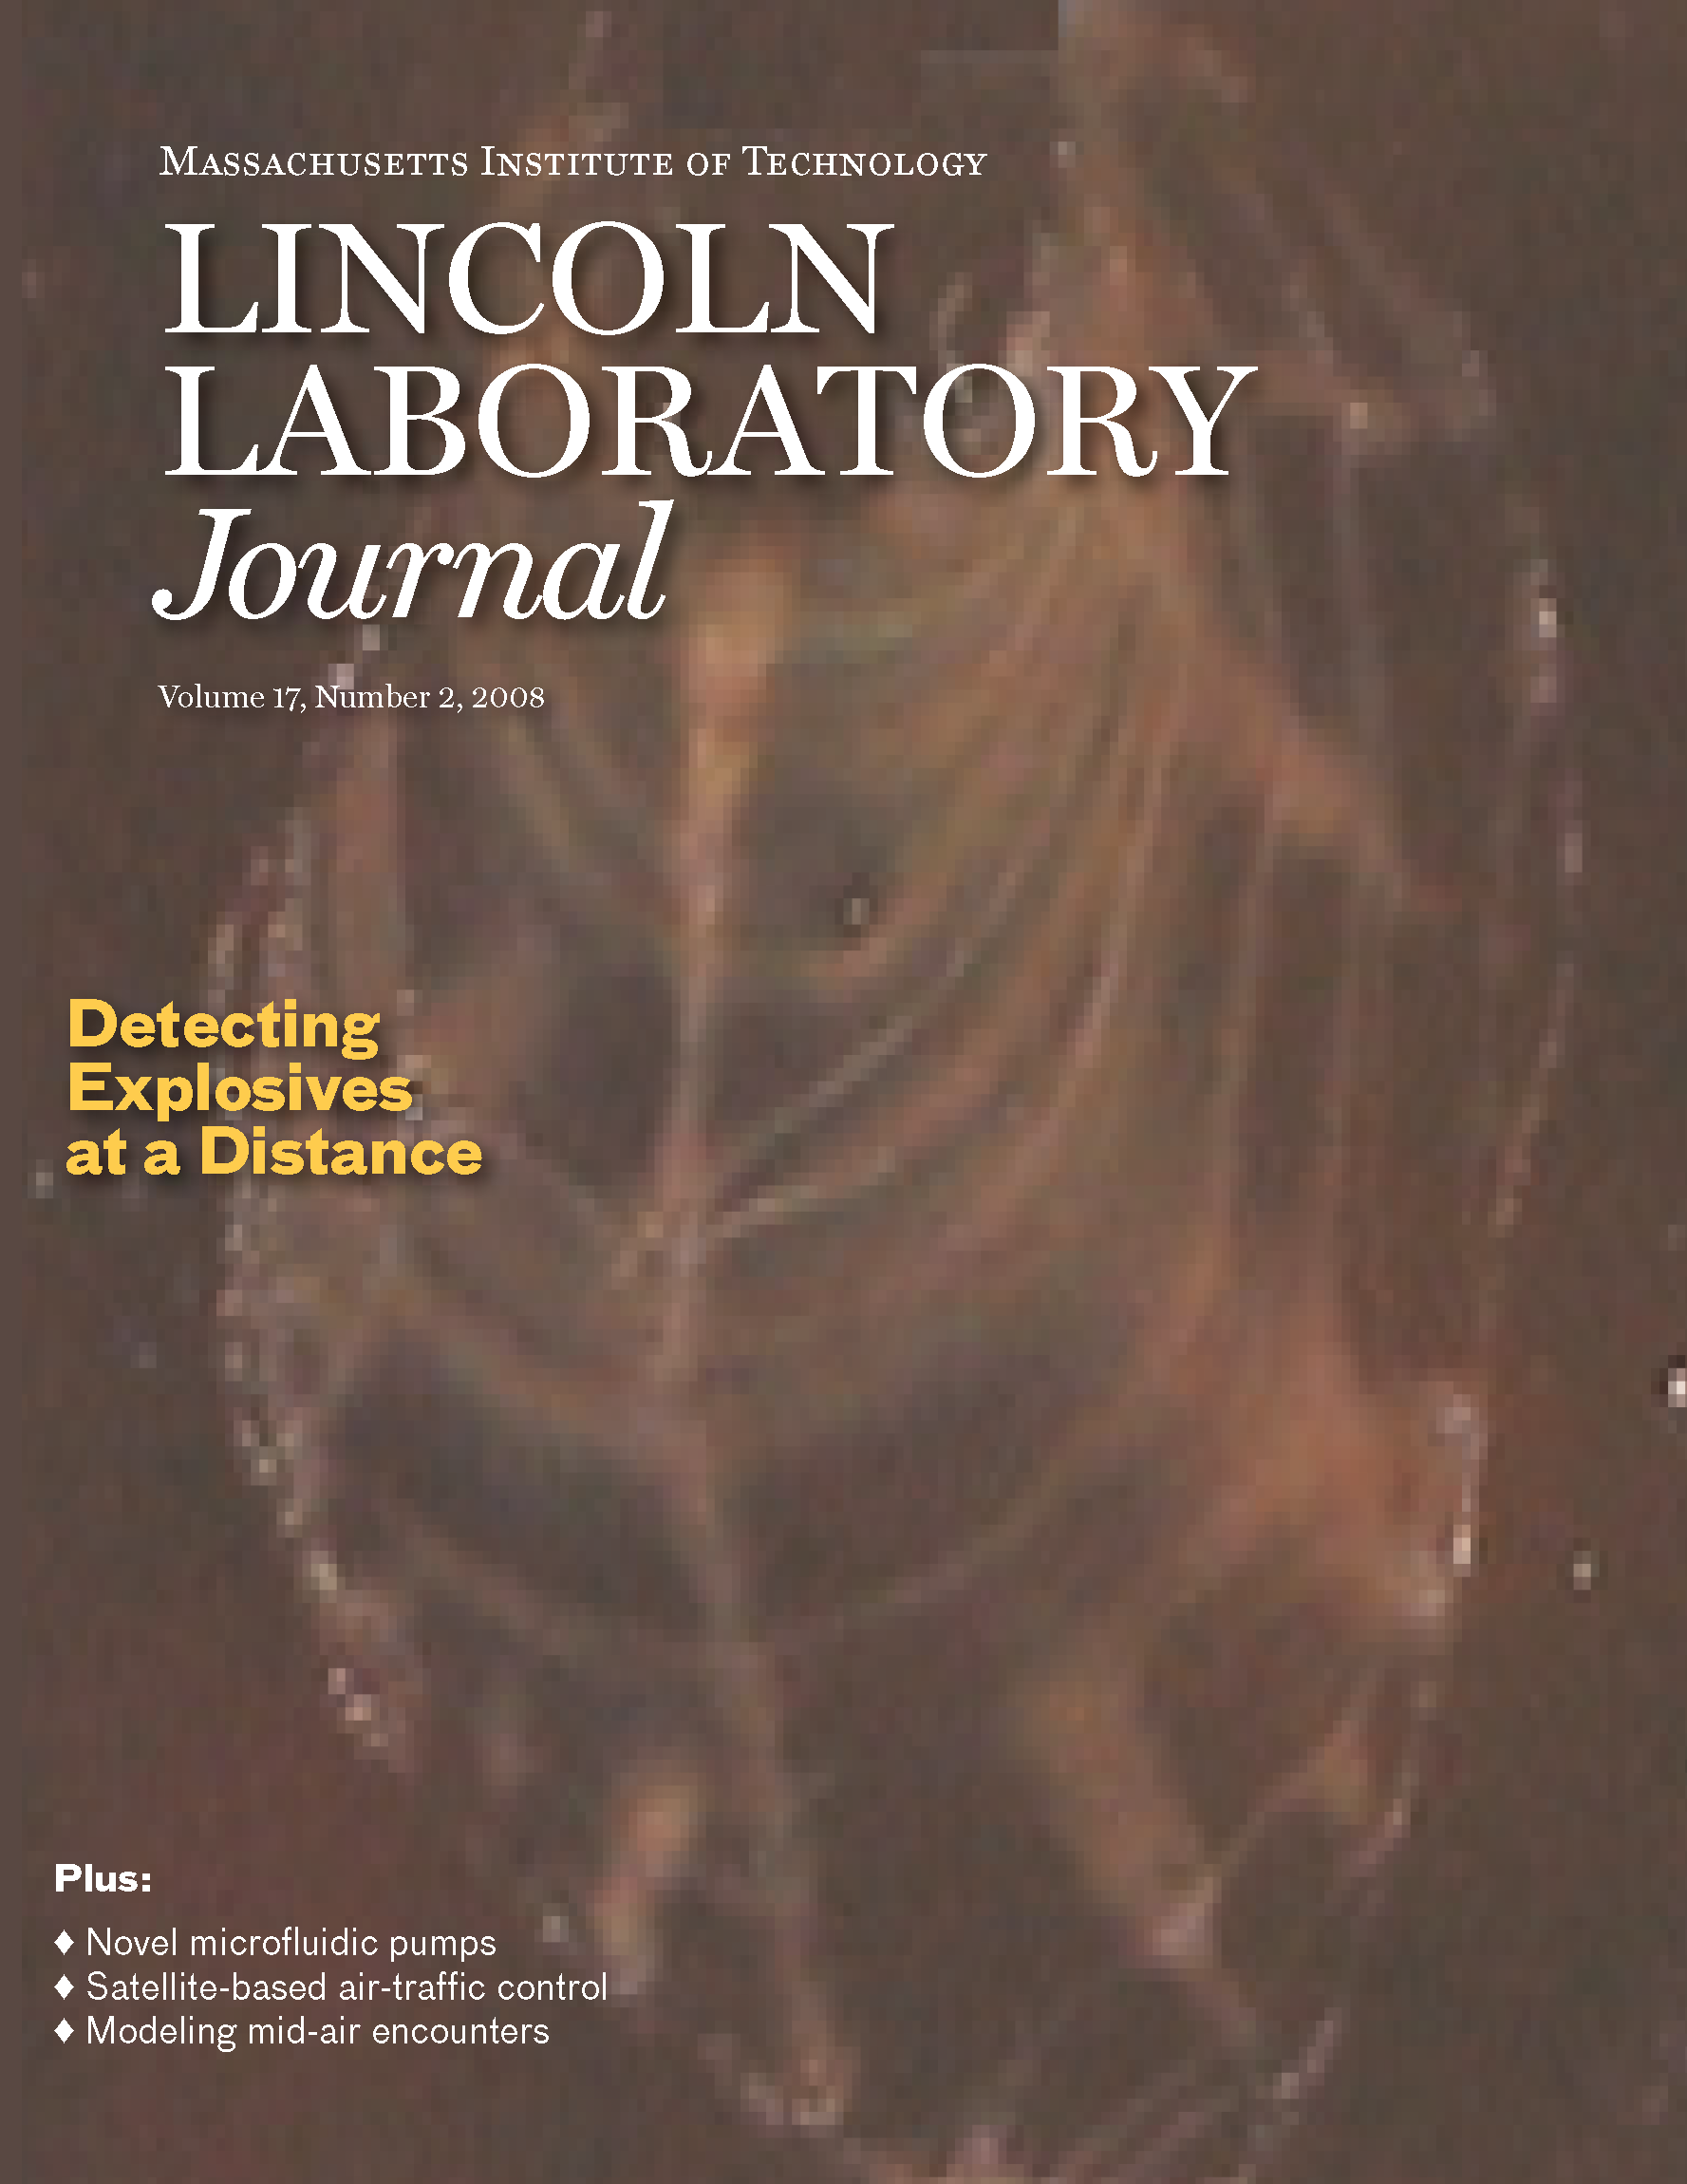 Lincoln Laboratory Journal #17 Issue 2 Cover